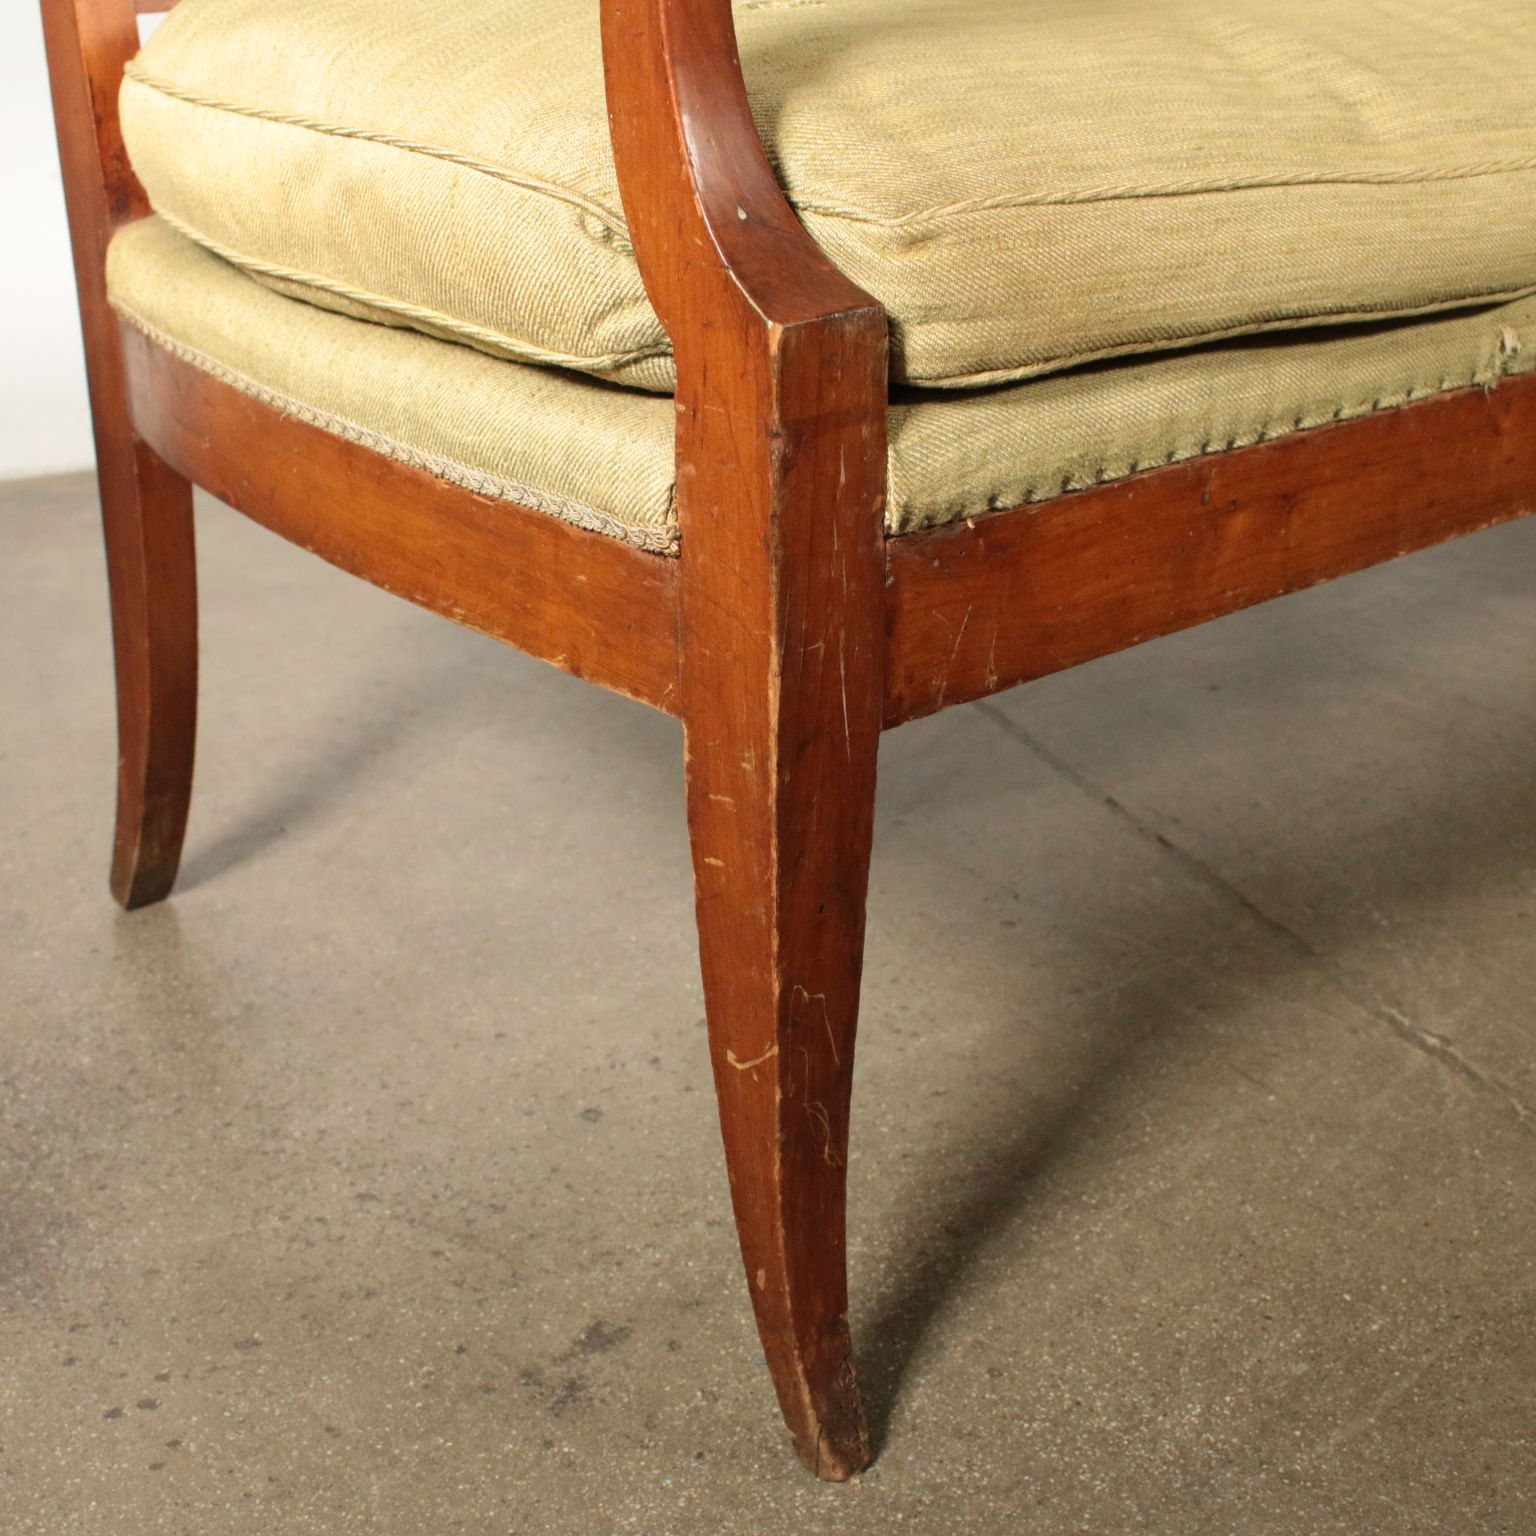 Elegant Sofa Cherry Wood Italy Early 1800s 7